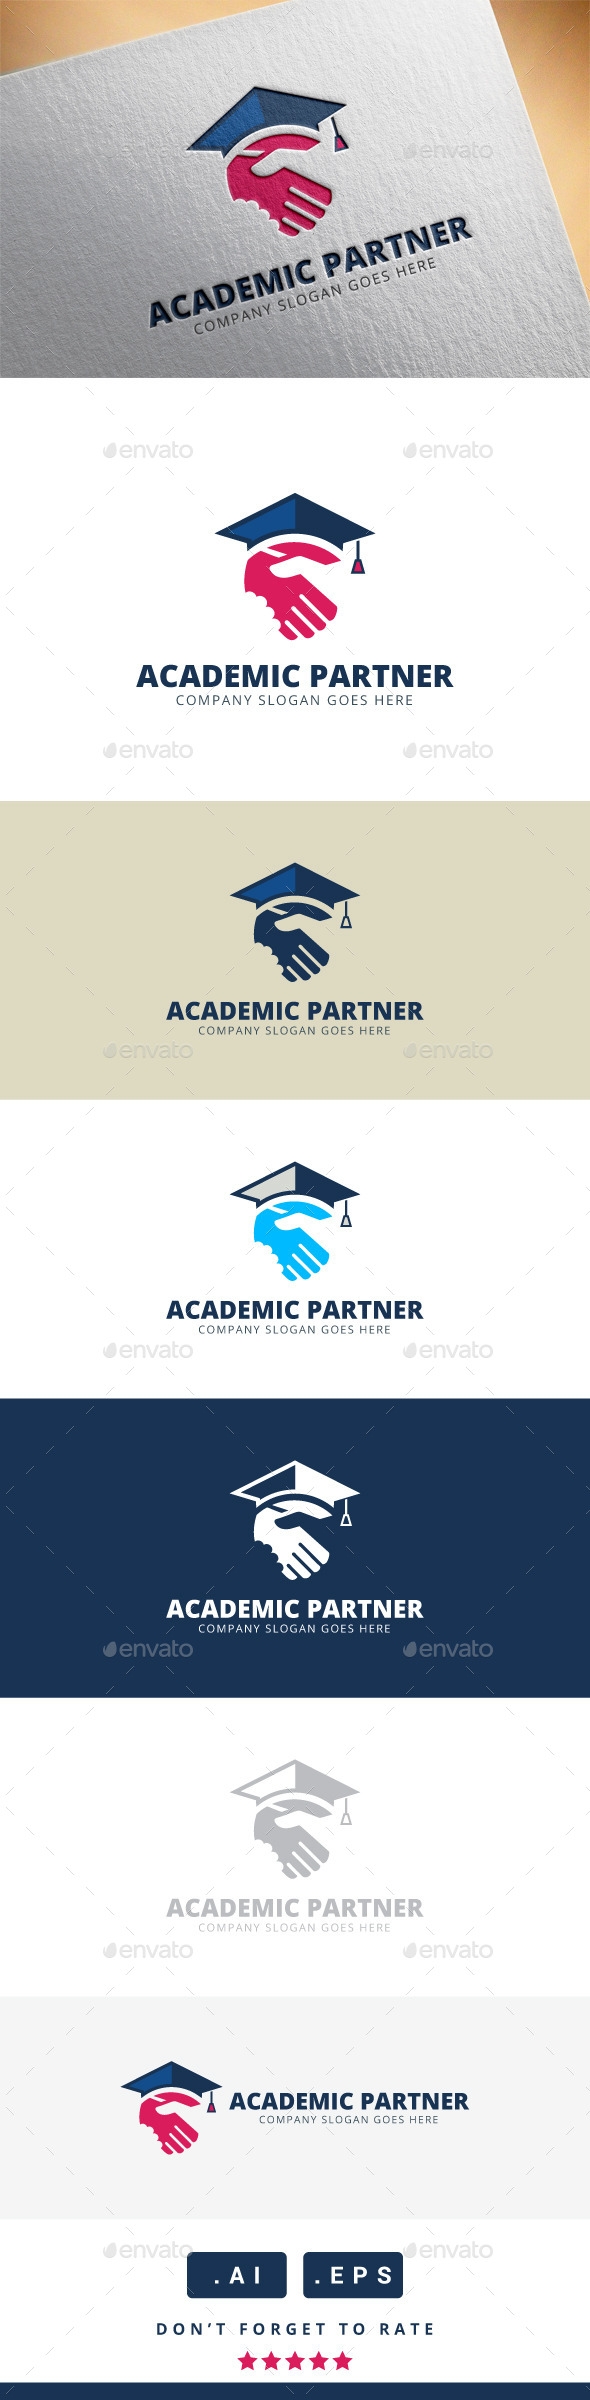 Academic Partner Logo